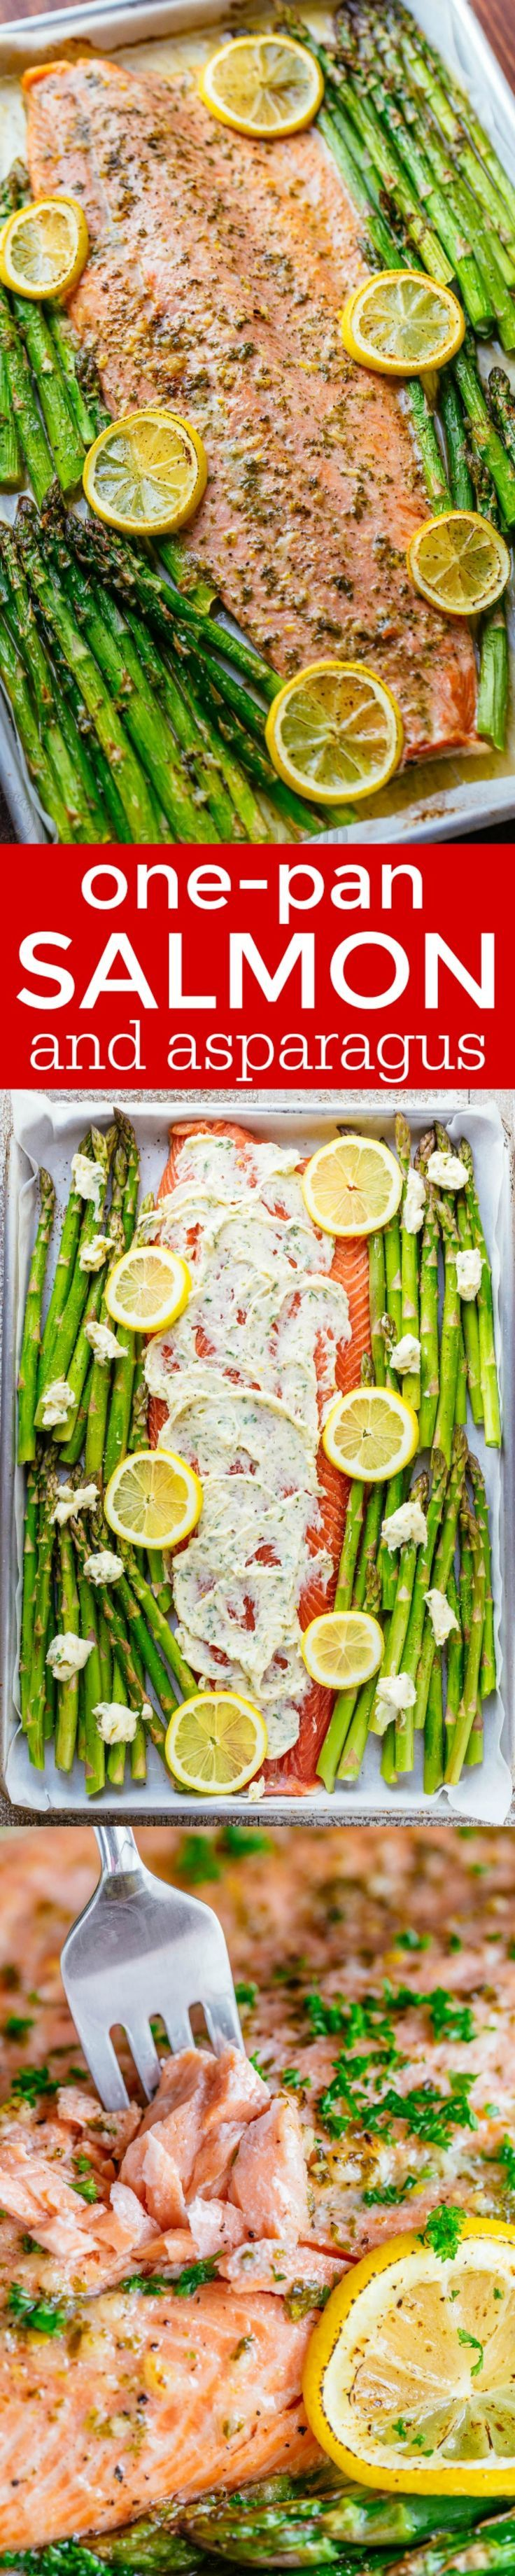 One Pan Salmon and Asparagus with Garlic Herb Butter is quick and easy (25 minute meal). The garlic-herb butter gives this salmon and asparagus rich flavor - sponsored by Salmon Council | http://natashaskitchen.com